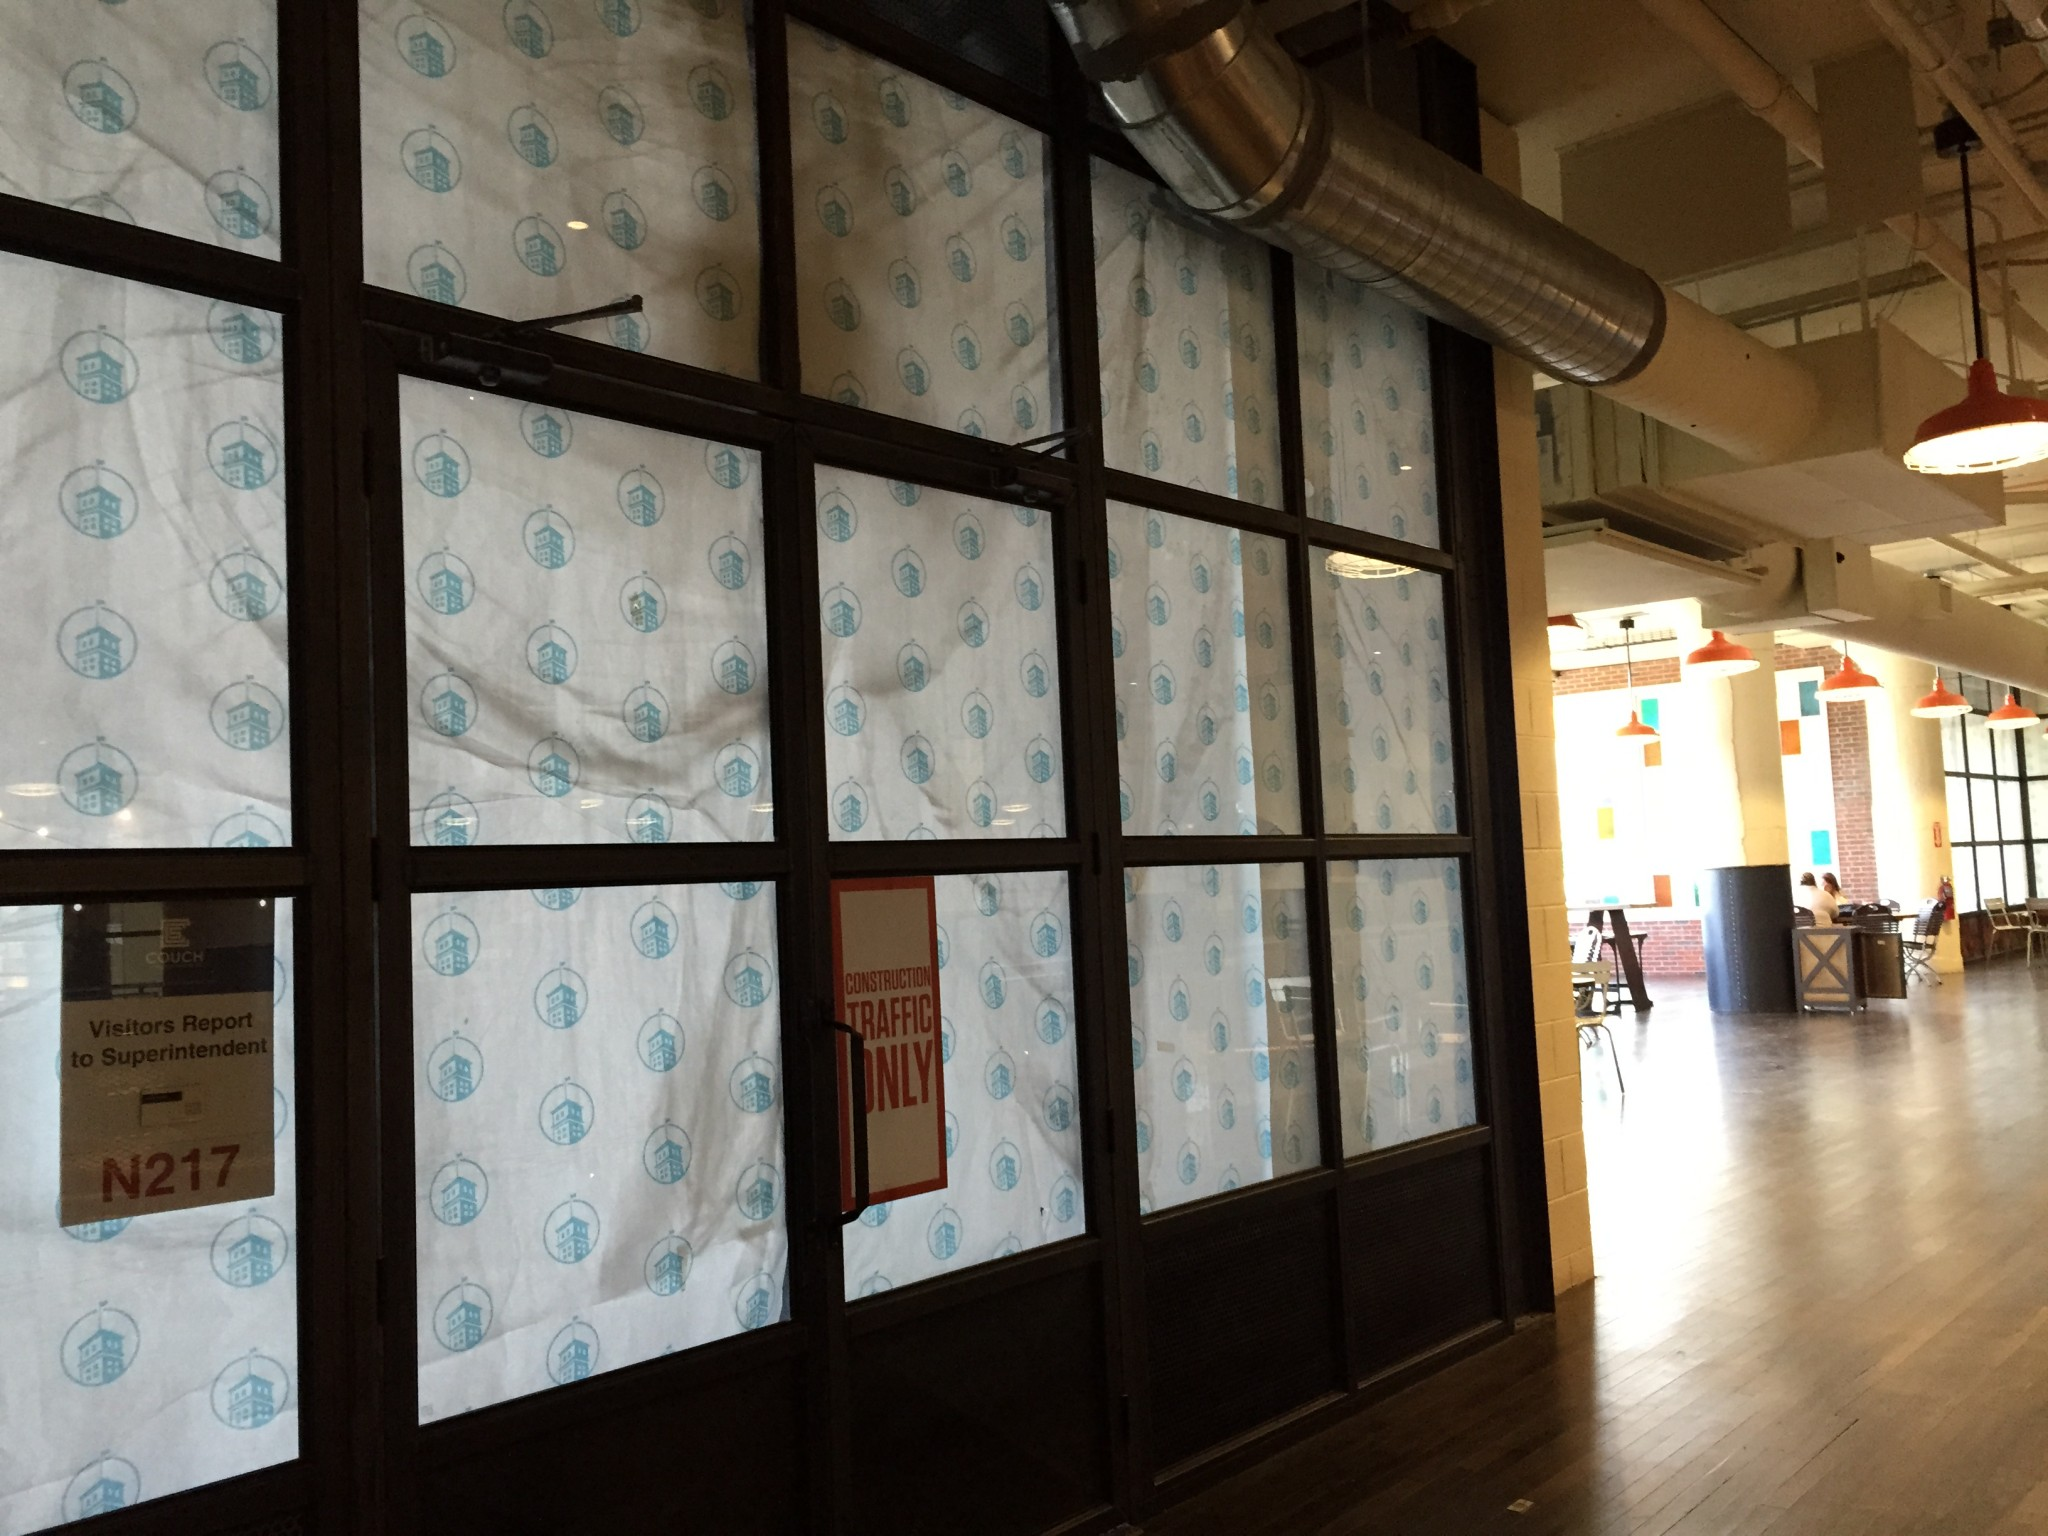 Ponce City Market space N217